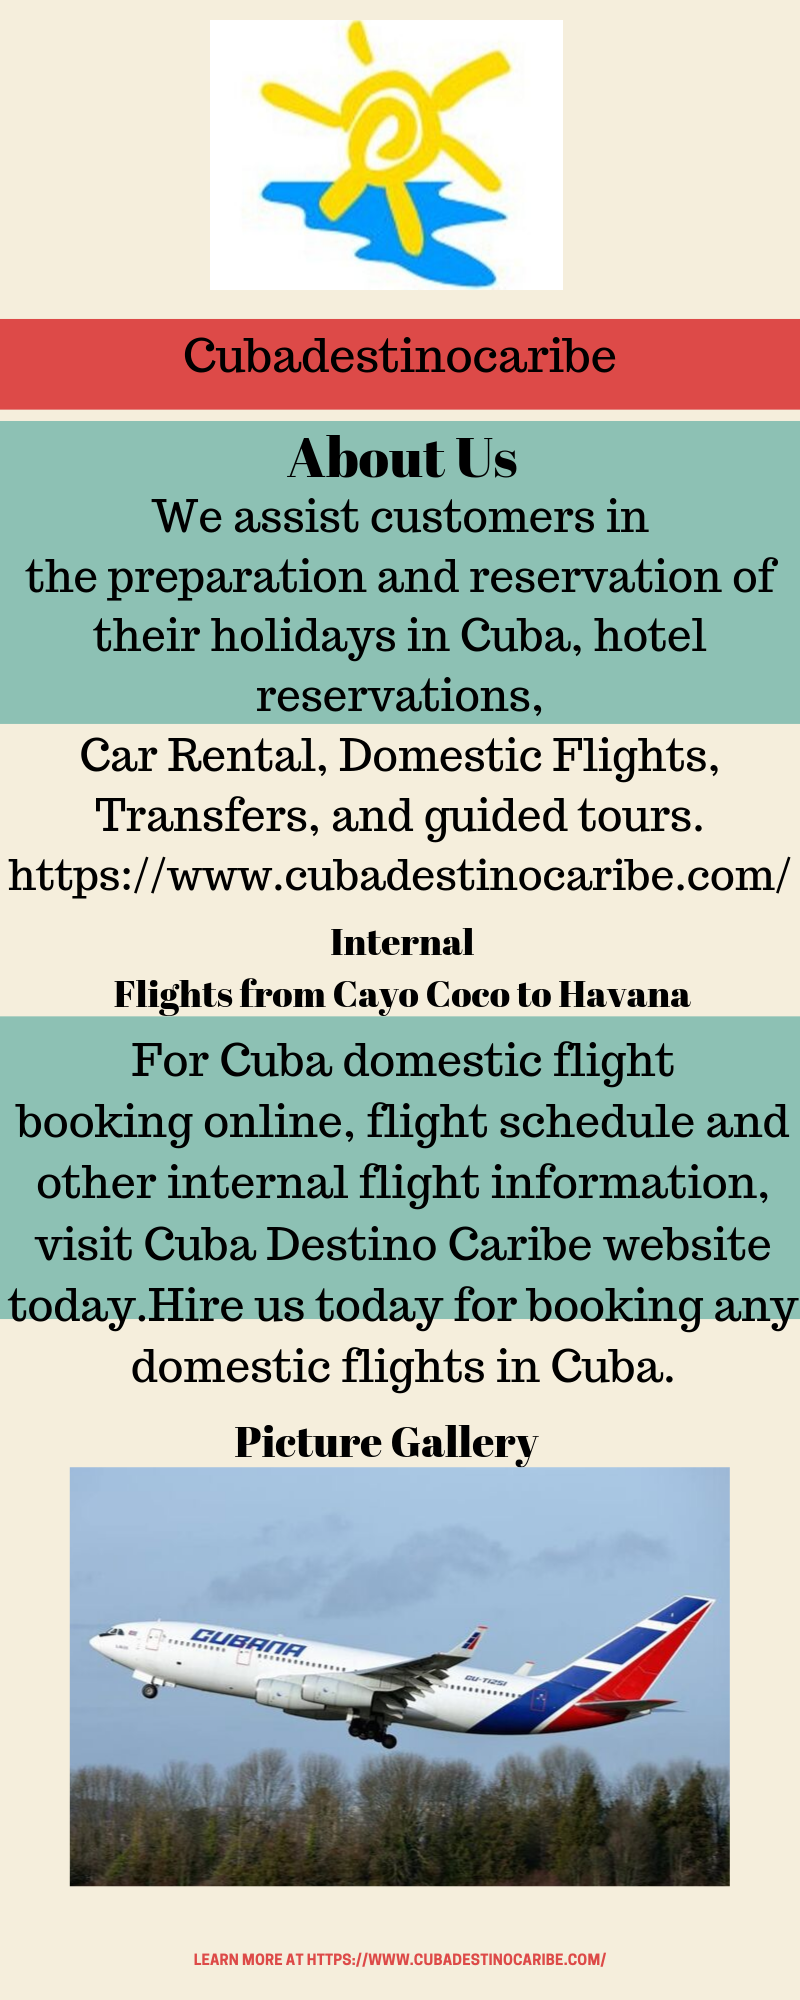 Internal Flights from Cayo Coco to Havana #visitcuba